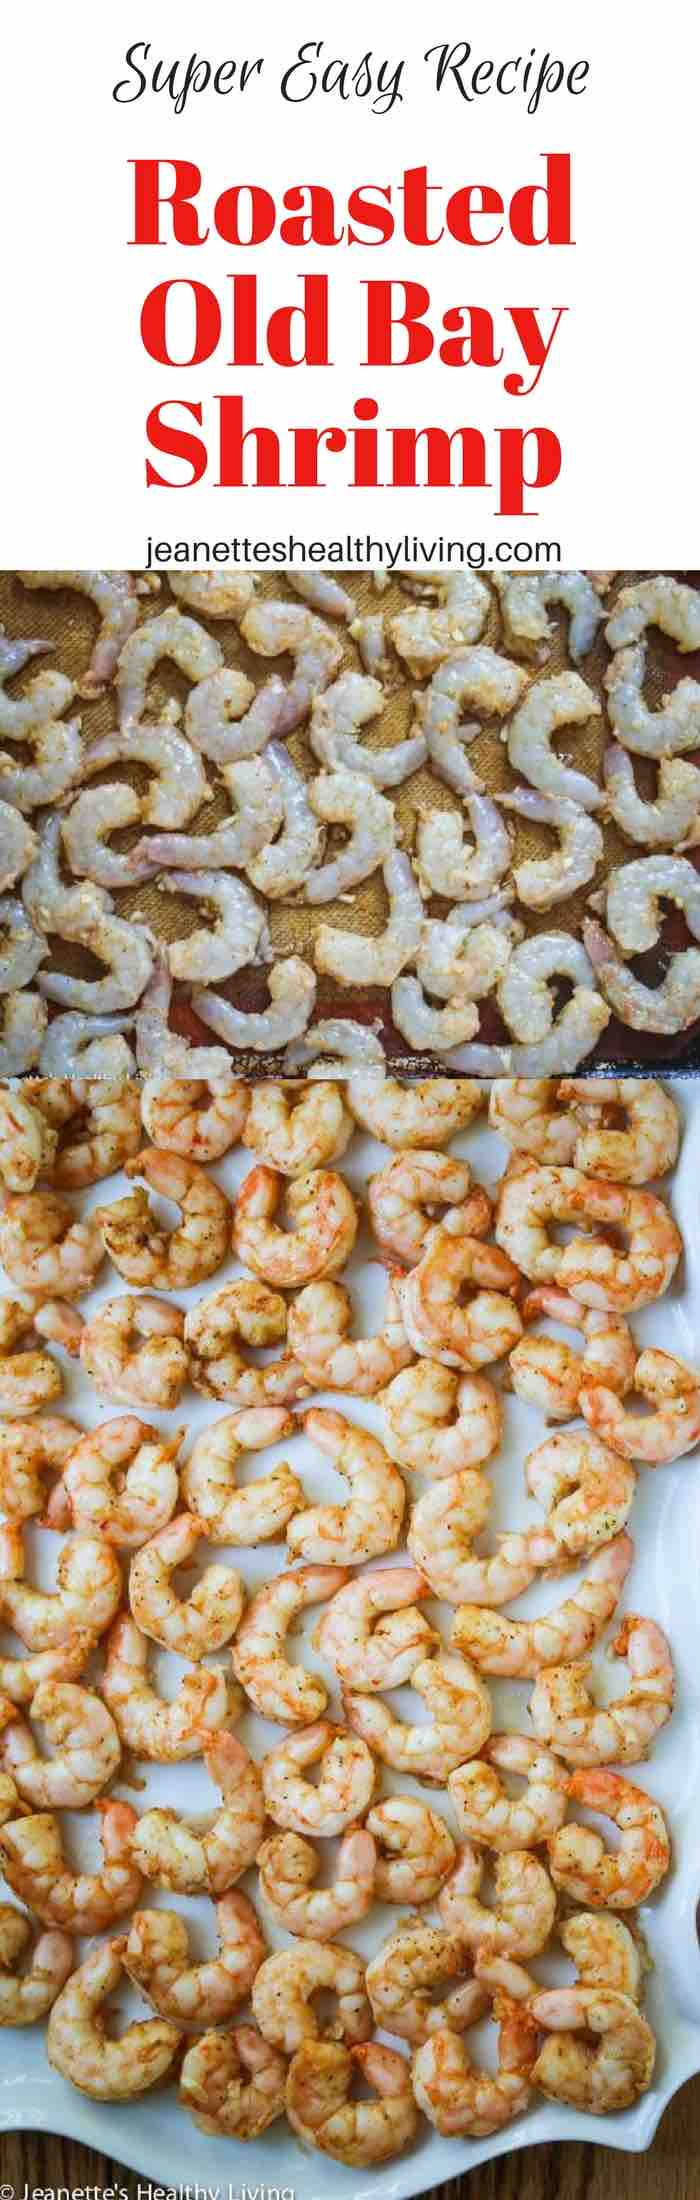 Roasted Old Bay Shrimp - these are so delicious and easy to make - perfect for a quick party appetizer with a kick, better than plain old shrimp cocktail